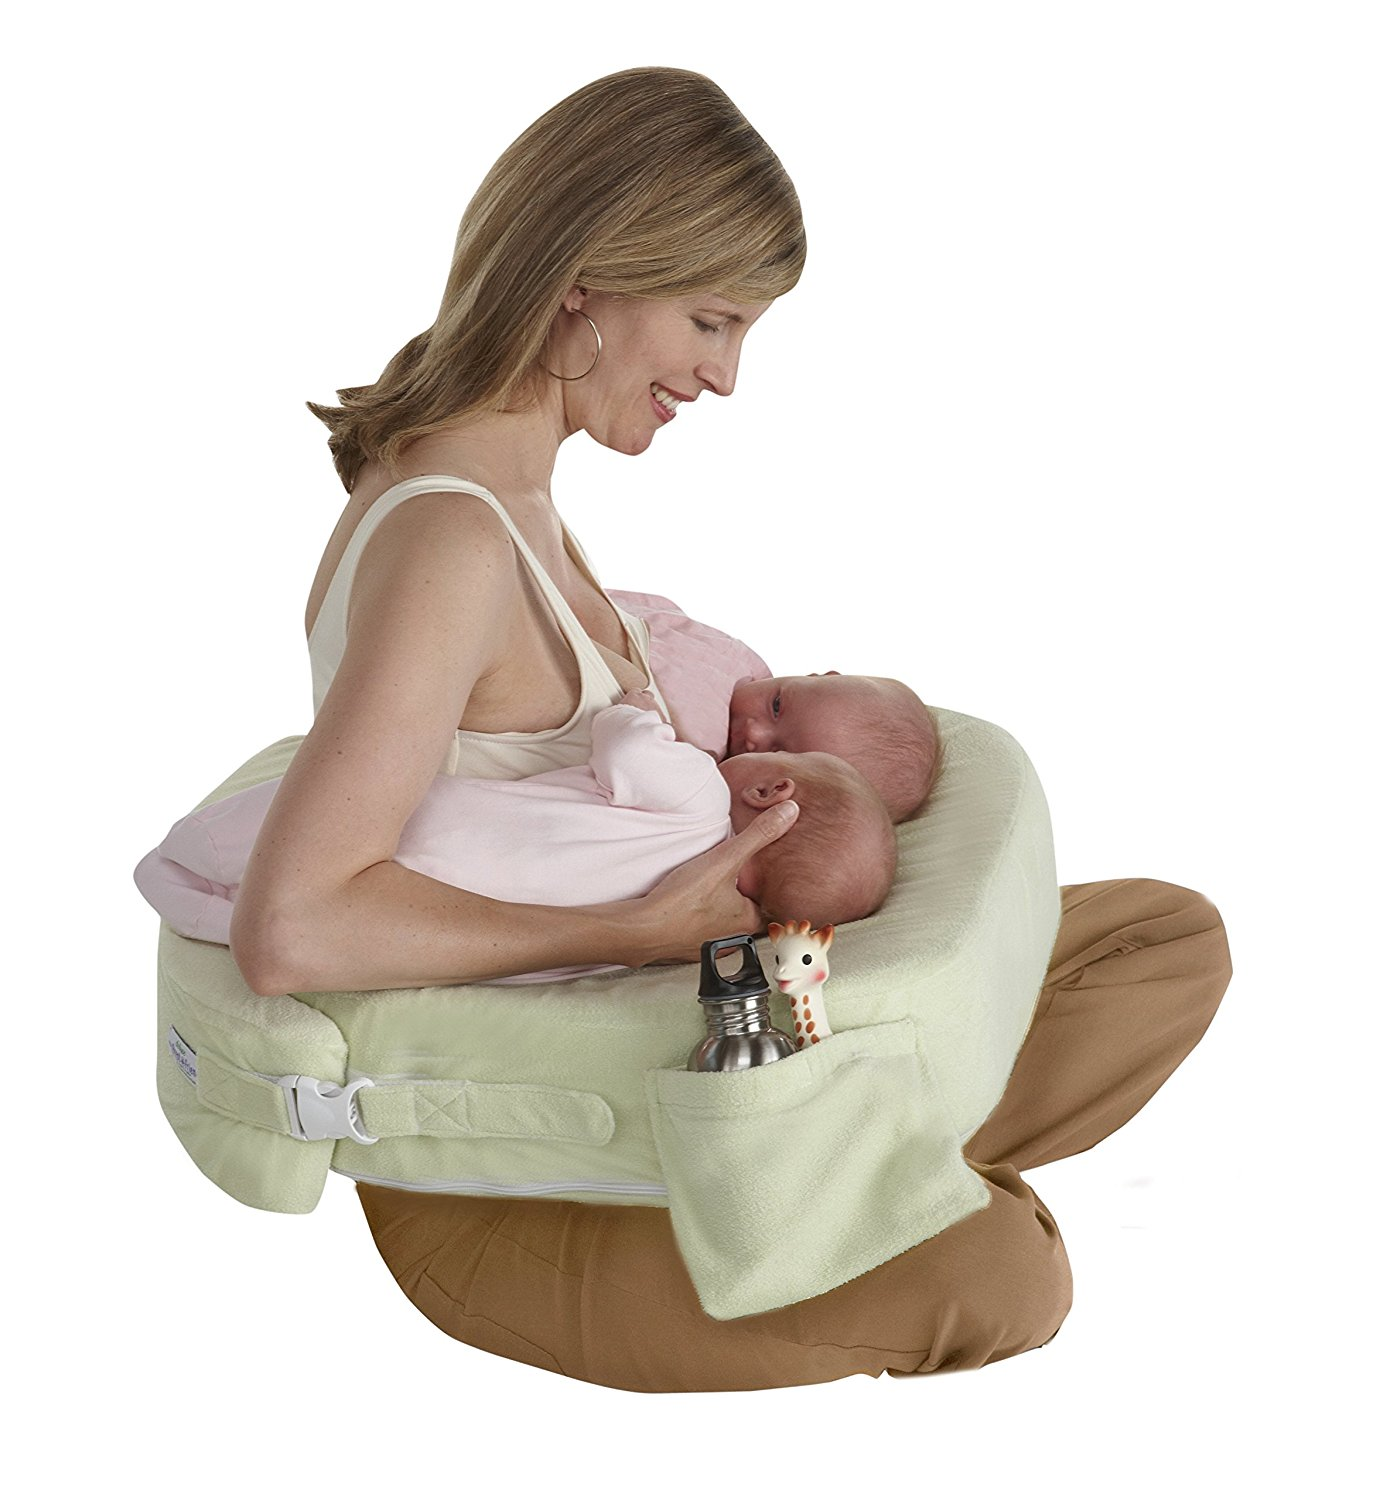 Twins Plus Deluxe Nursing Pillow, Green, 0-12 Months, Ship from America by My Brest Friend